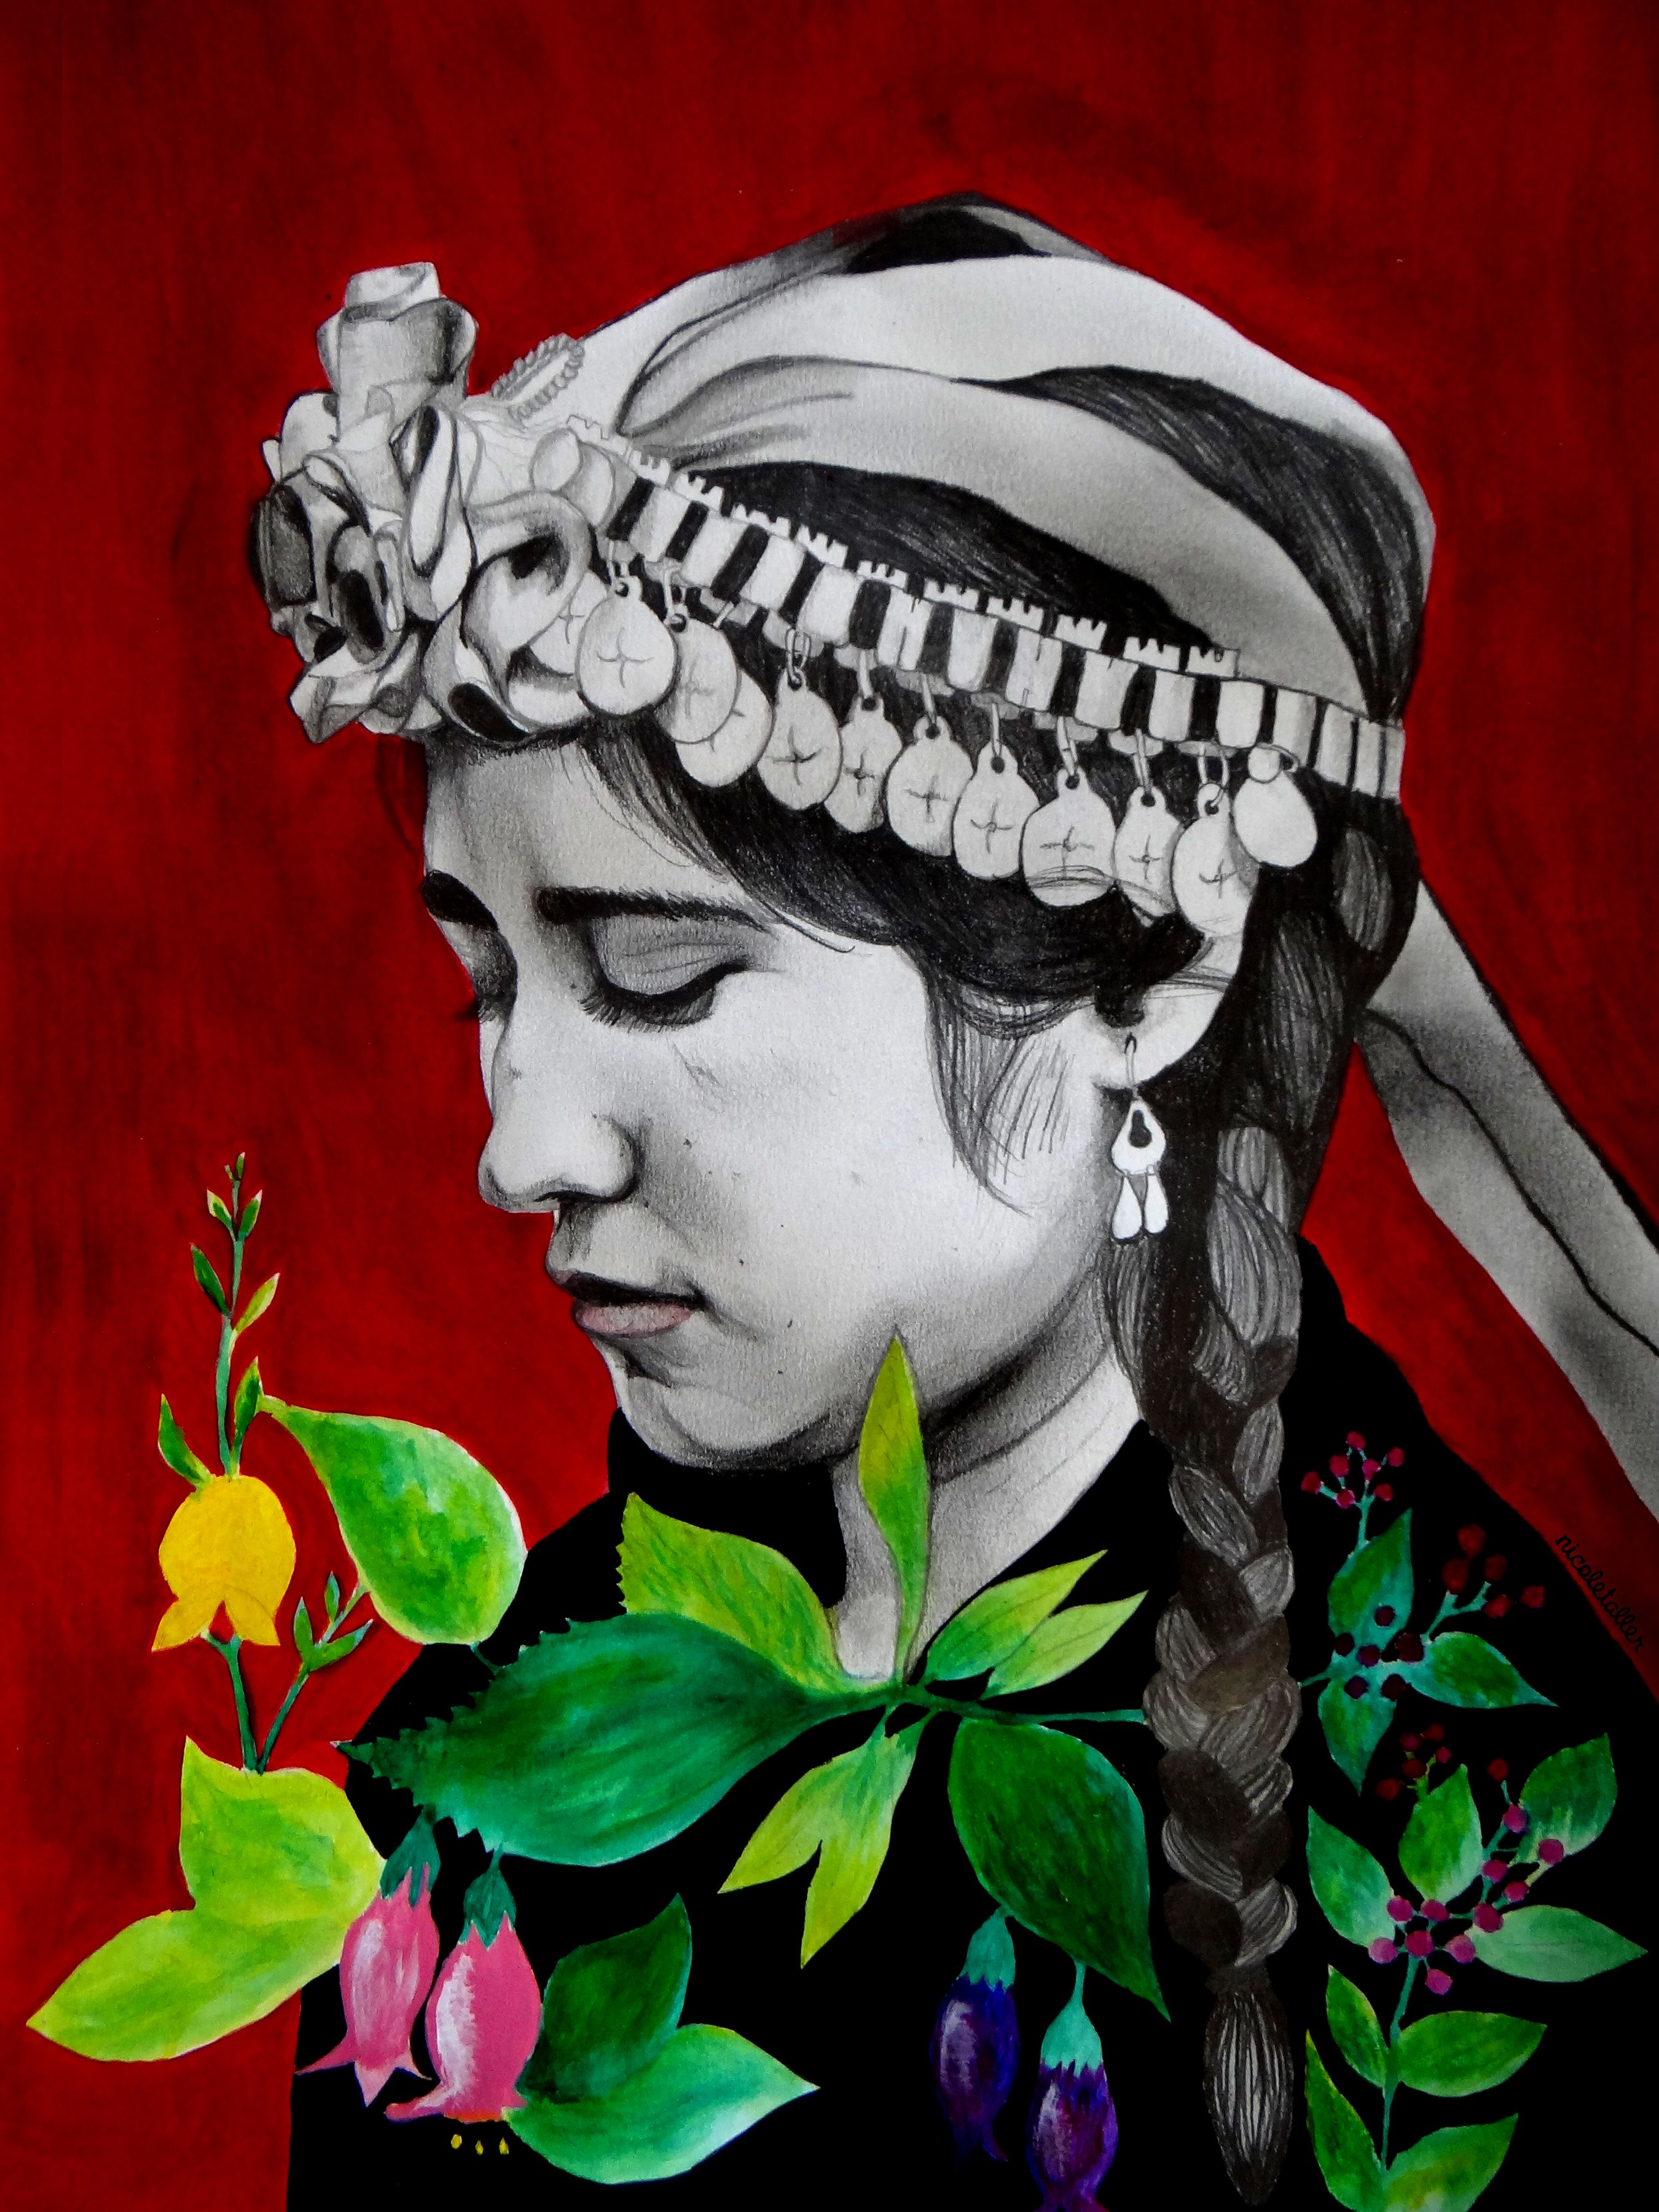 Mujer Mapuche By Nicoletaller Mujer Mapuche Arte Mapuche Dibujos Mapuches